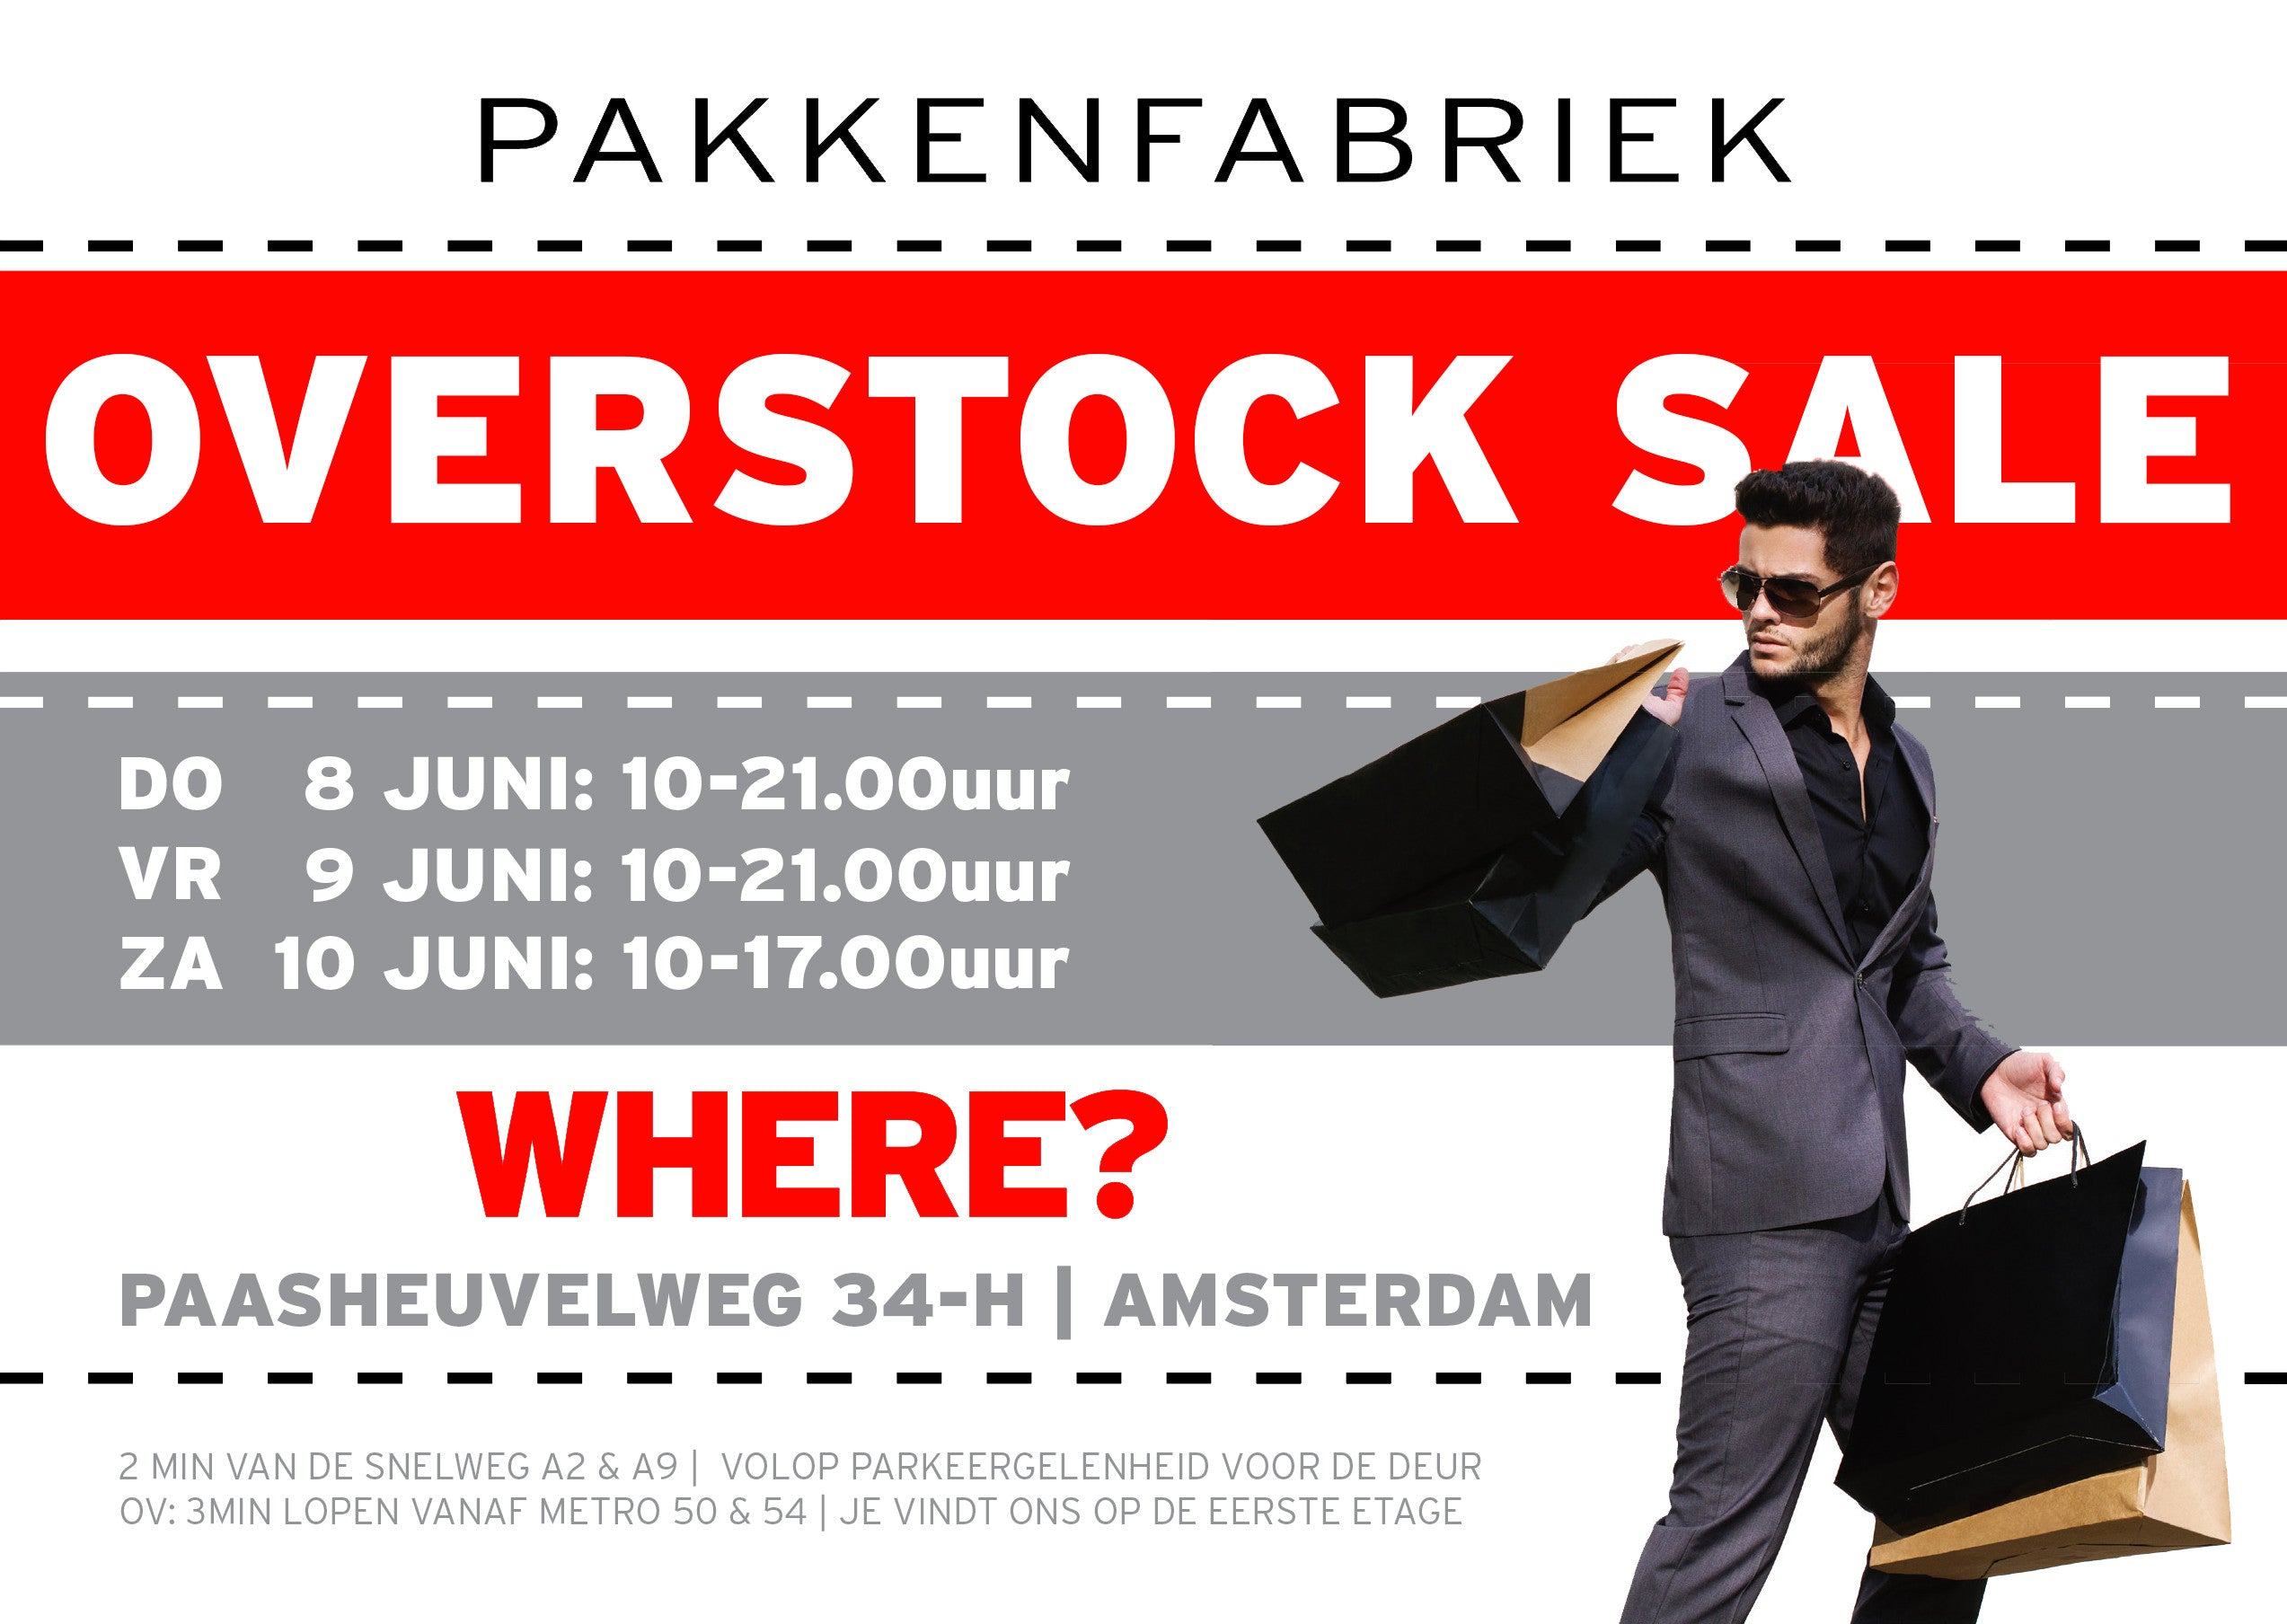 Overstock Sale in Amsterdam